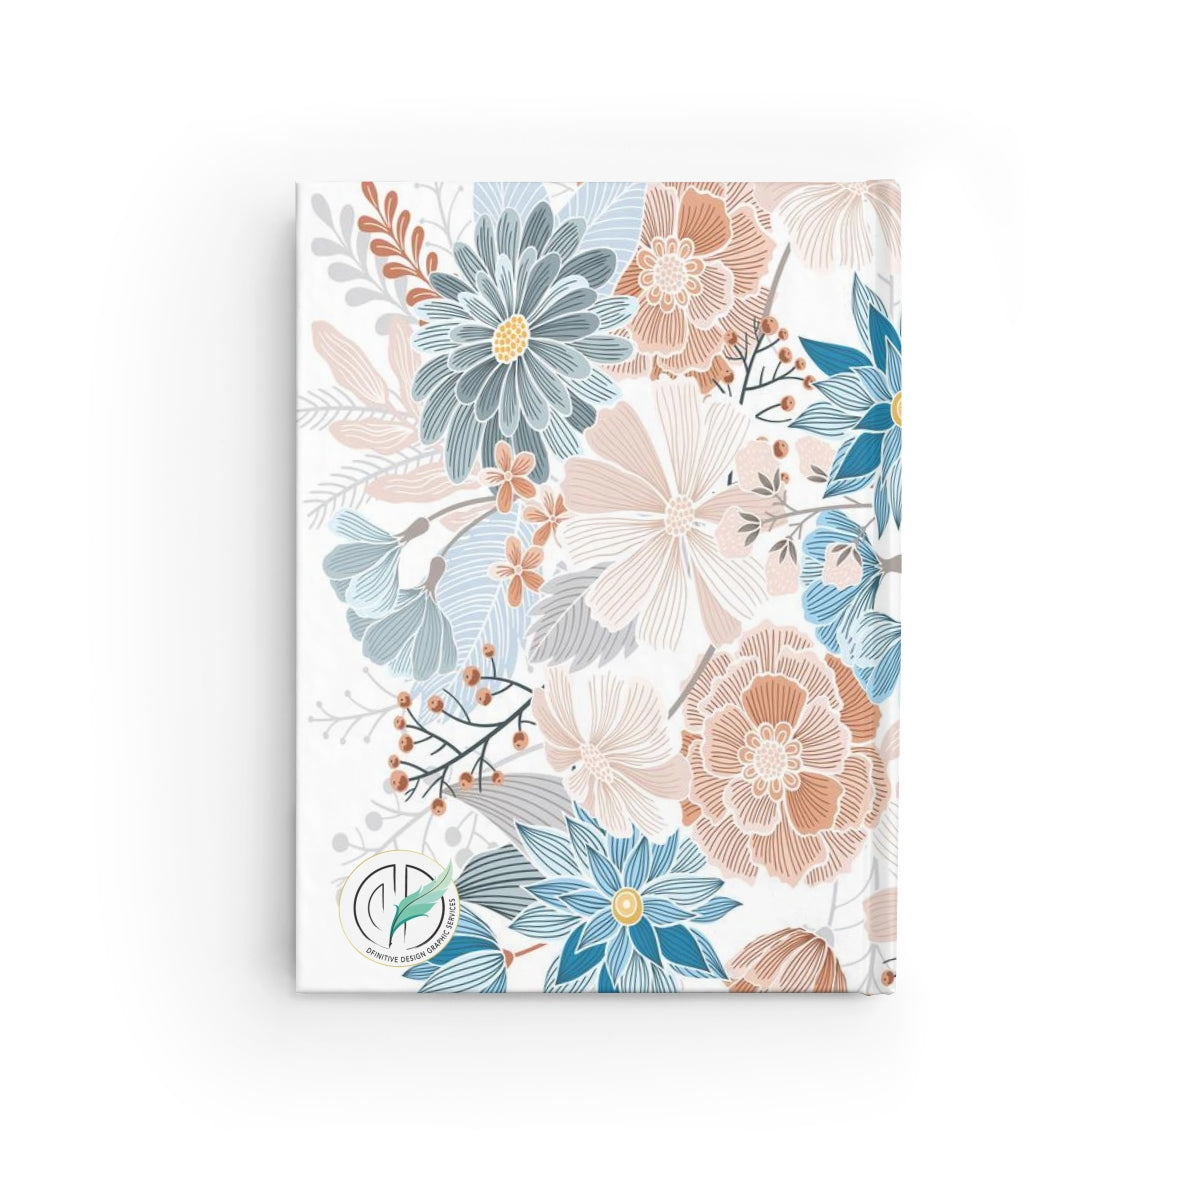 Natural Blooms Journal - Ruled Line